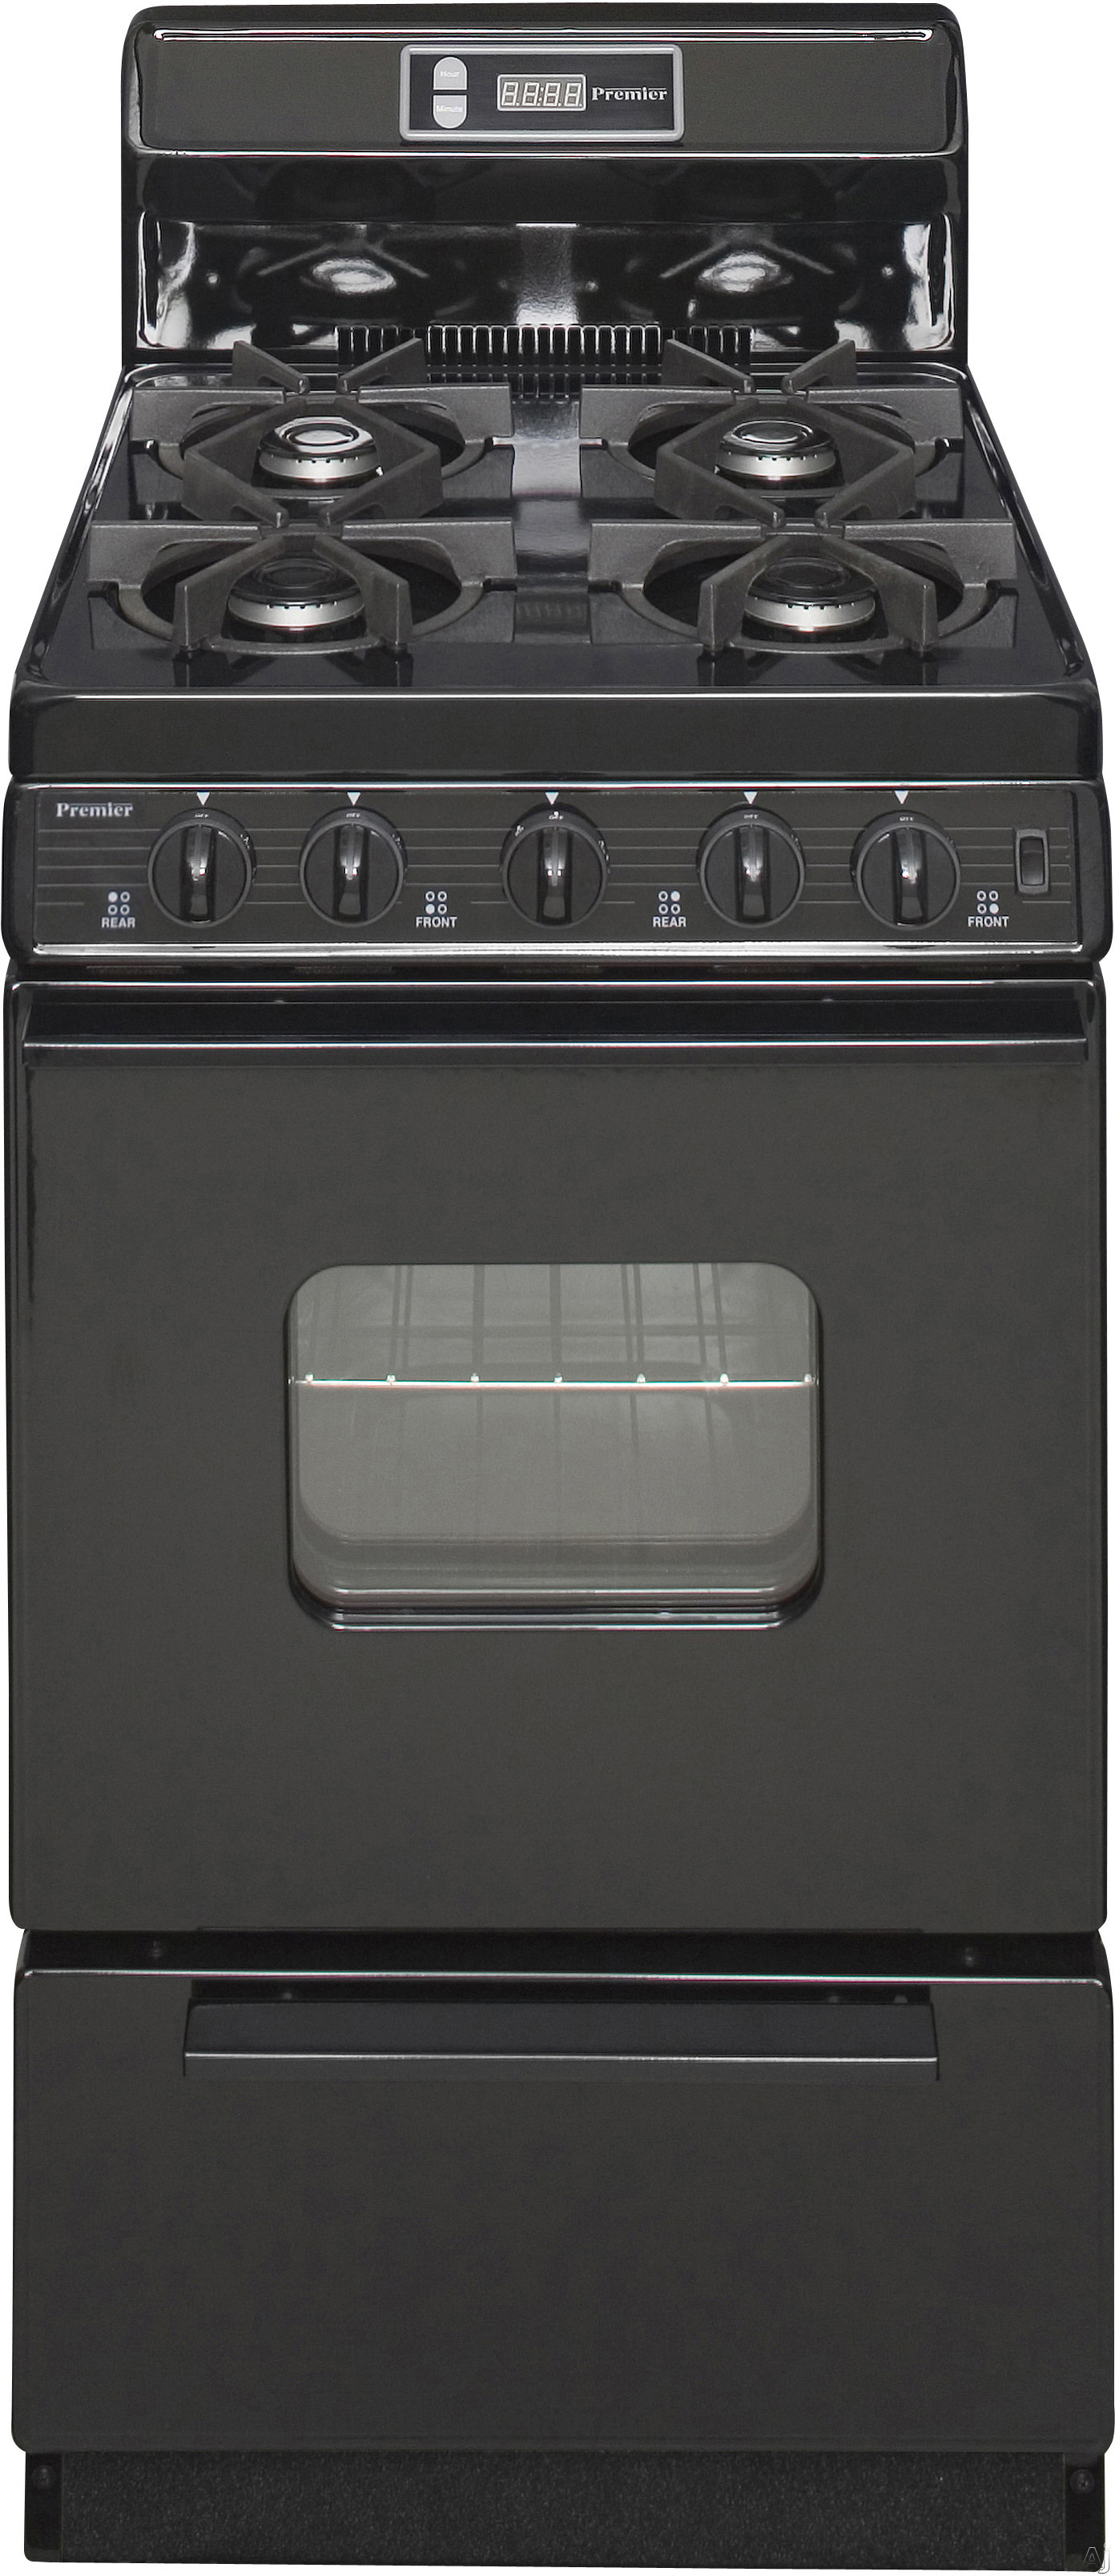 Premier SHK220BP 20 Inch Freestanding Gas Range with 4 Sealed Burners, Electronic Ignition, 17,000 BTU Oven Burner, Electronic Clock/Timer, Interior Oven Light, ADA Compliant and 8 Inch Porcelain Back